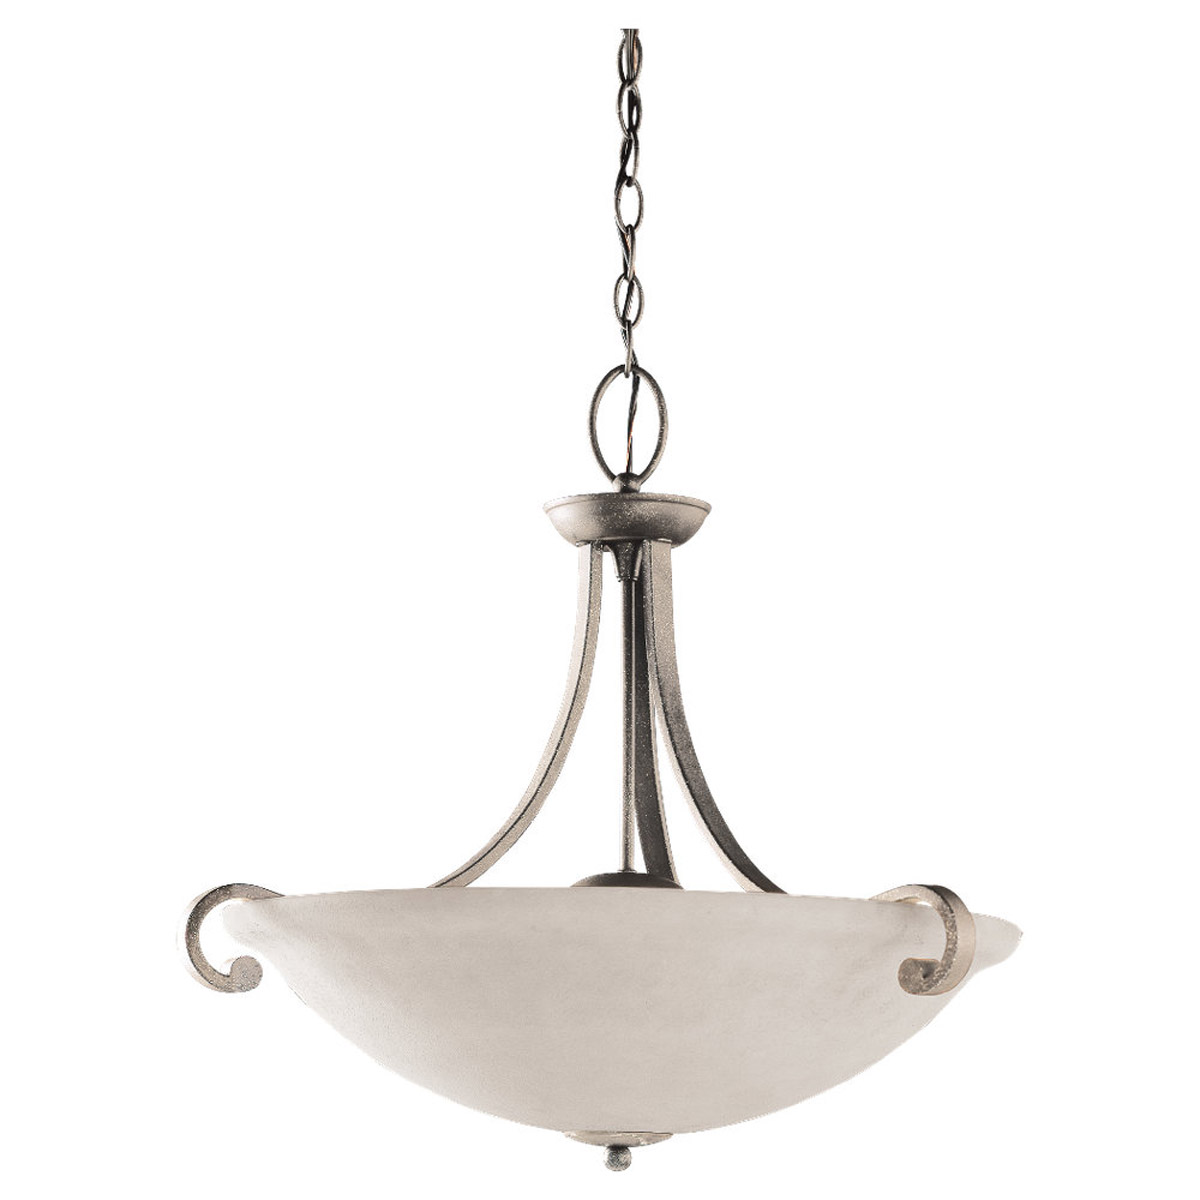 Sea Gull Lighting Serenity 3 Light Pendant in Brushed Nickel 65191-962 photo